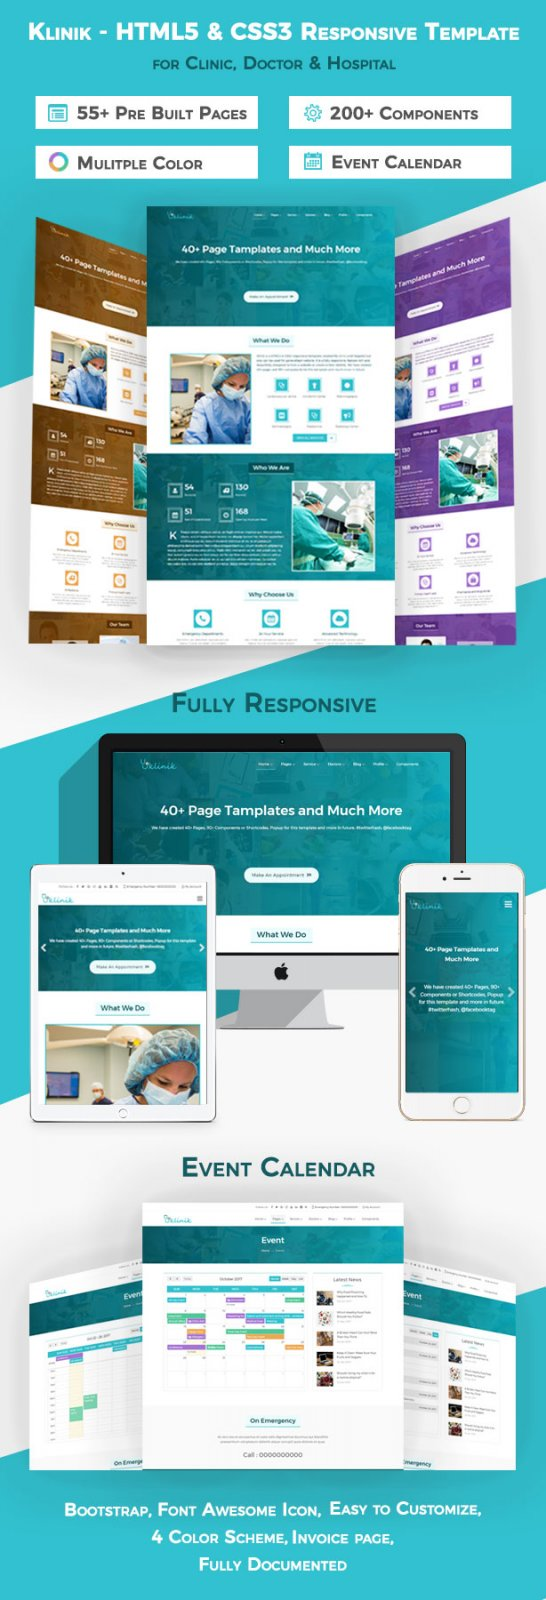 download-klinik-html5-css3-responsive-template-jpg.272